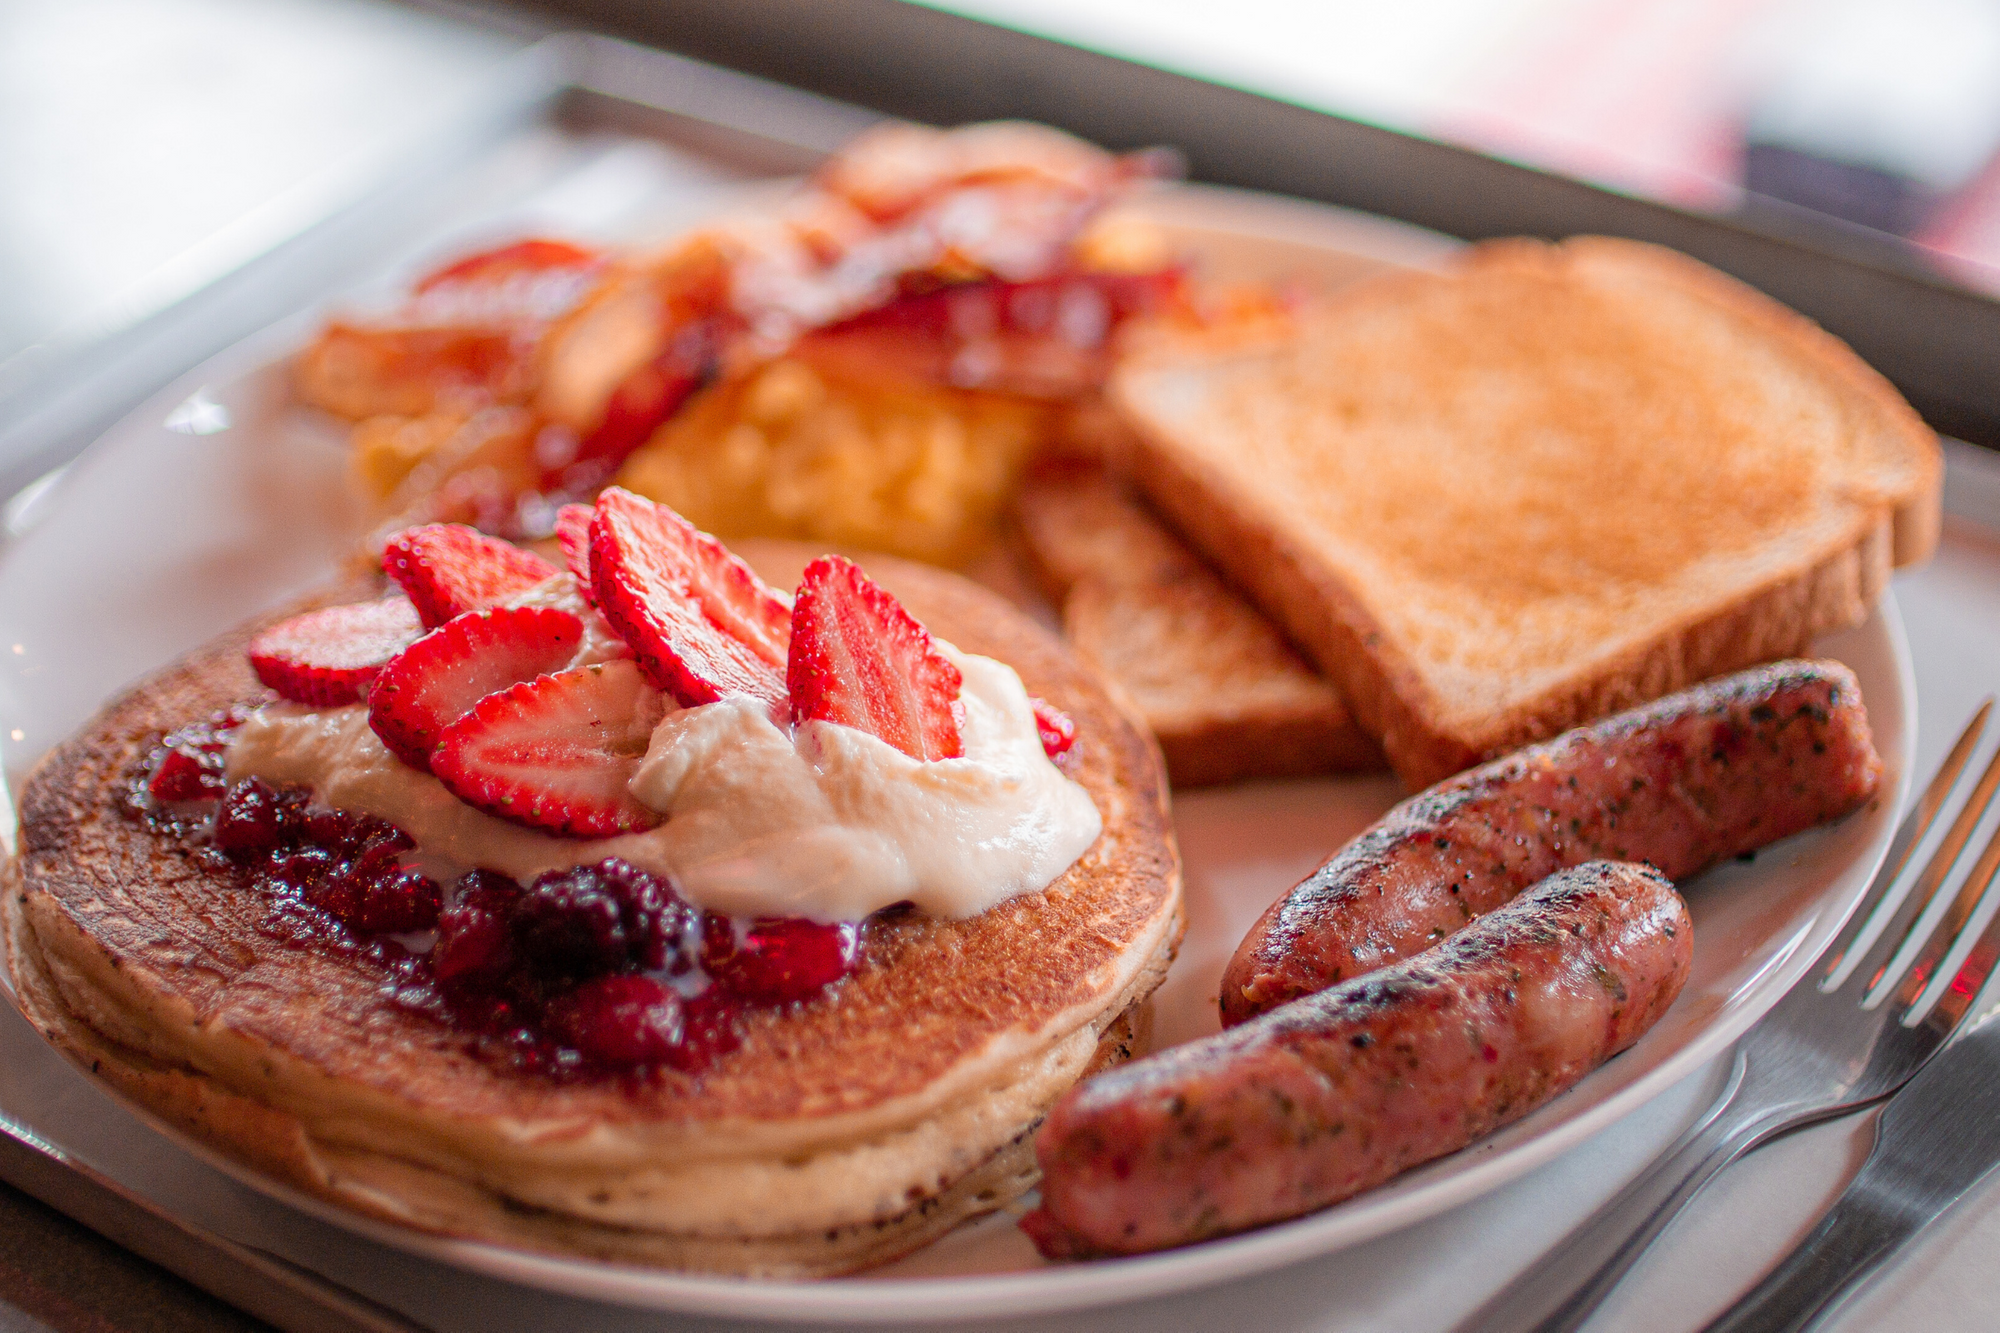 Stand-Out Breakfast Restaurants in Amherst, MA